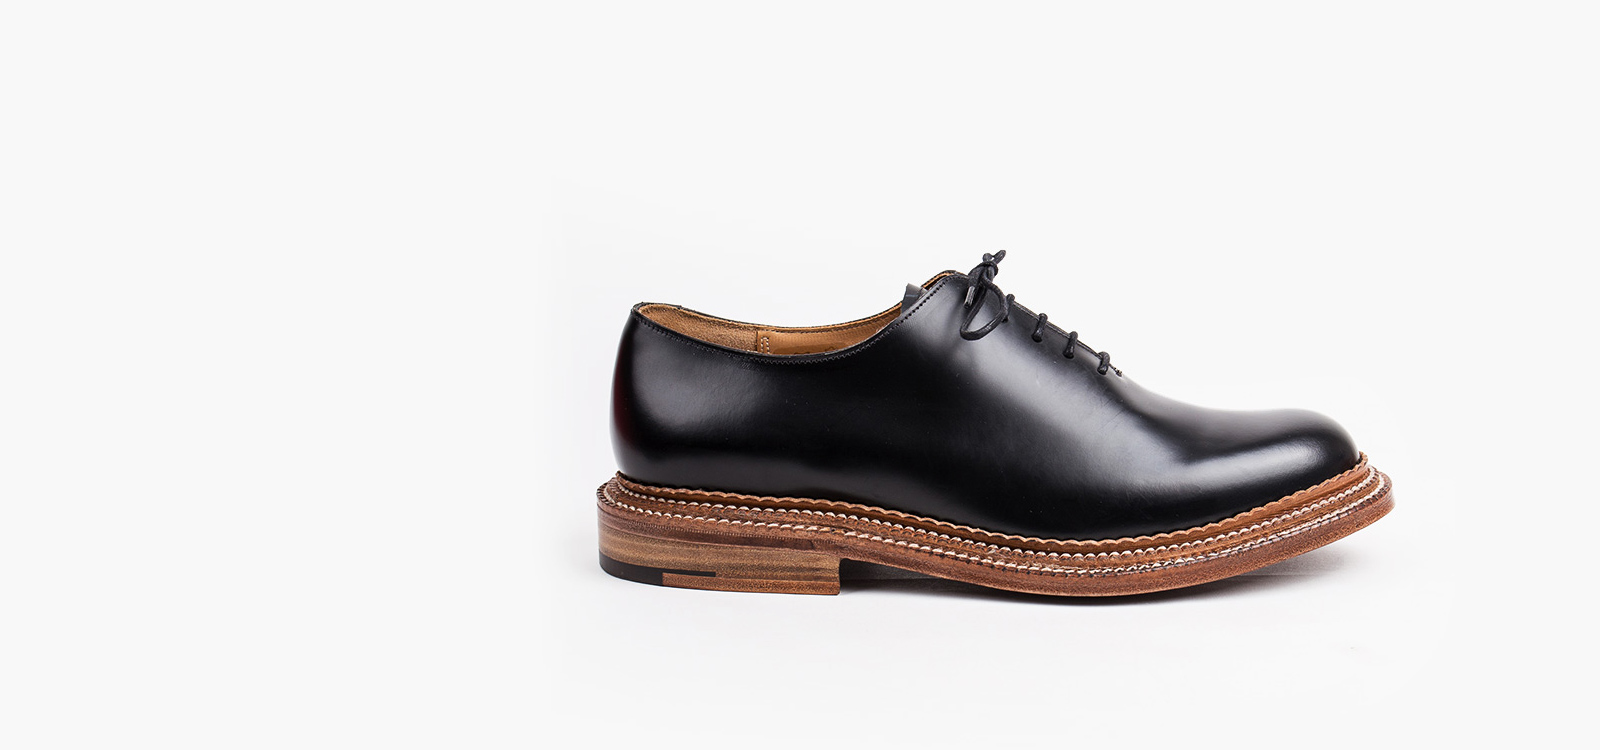 The made in England Triple Welt by Grenson